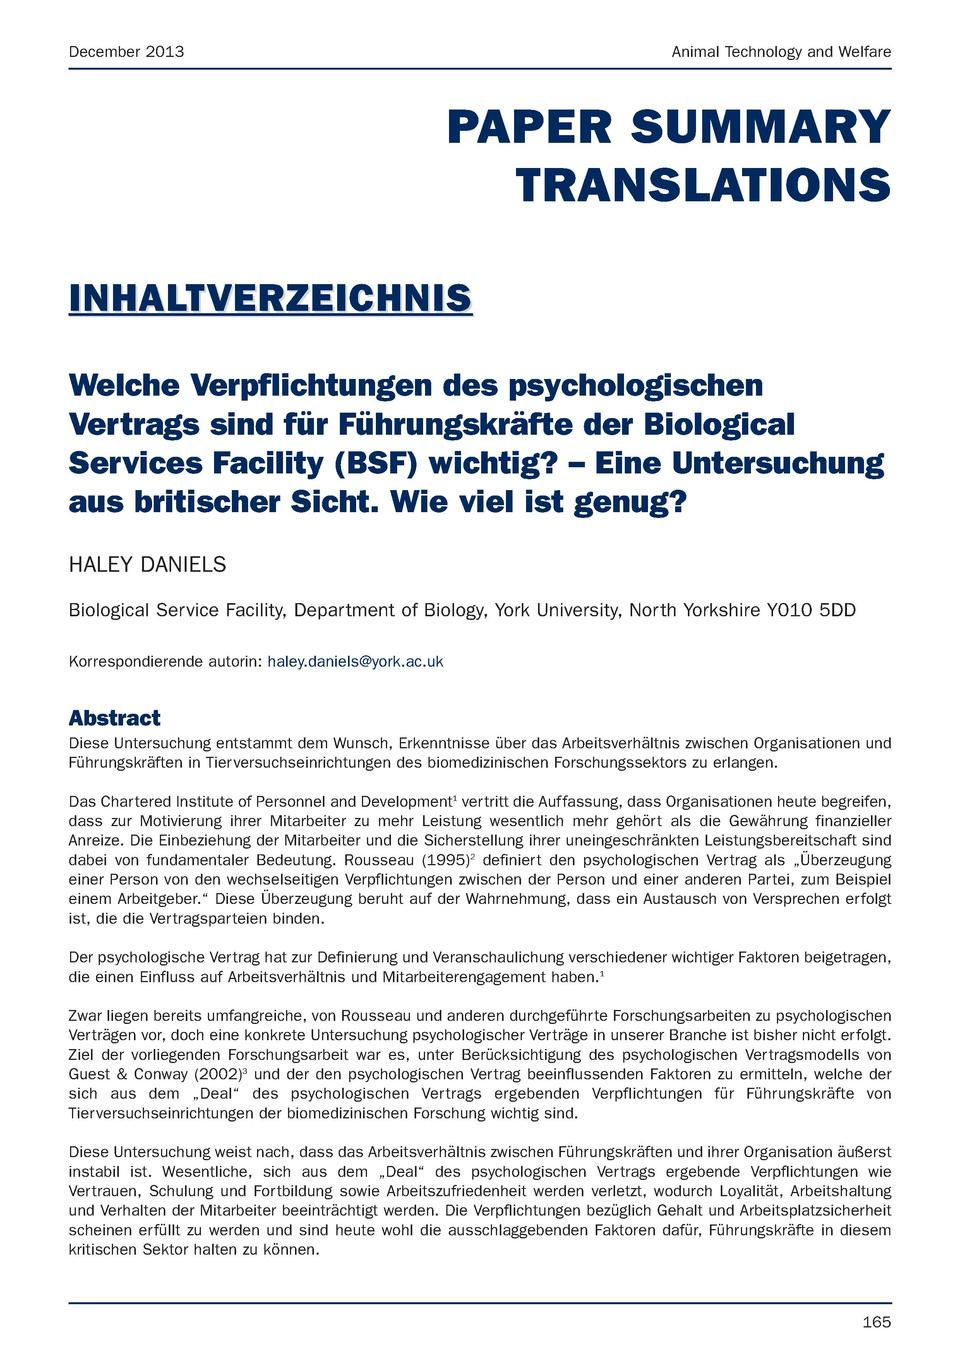 December 2013  Animal Technology and Welfare  PAPER SUMMARY TRANSLATIONS INHALTVERZEICHNIS Welche Verpflichtungen des psyc...